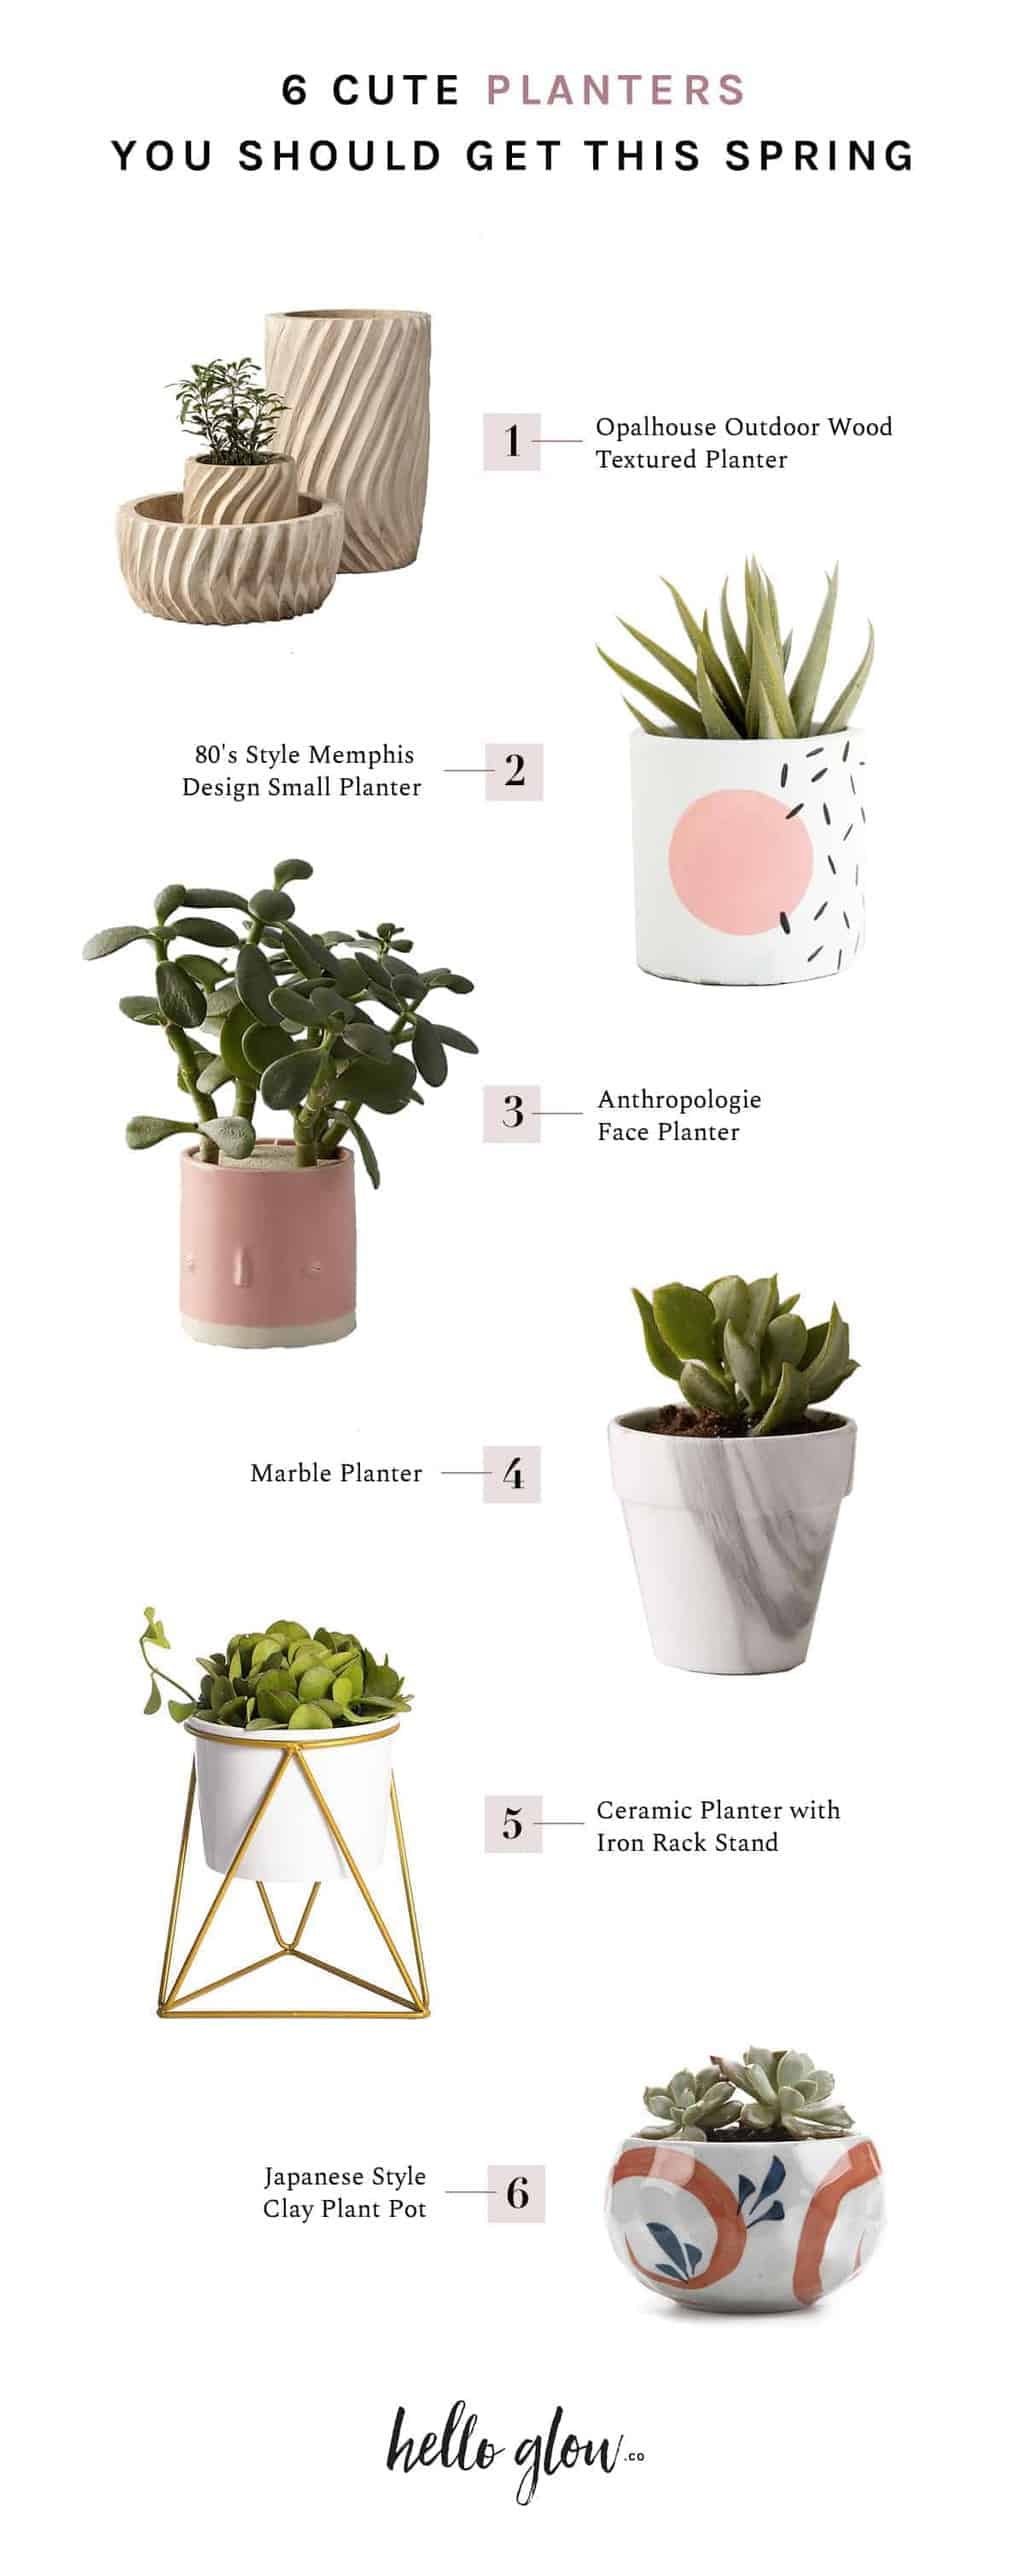 6 Cute Planters You Should Get This Spring